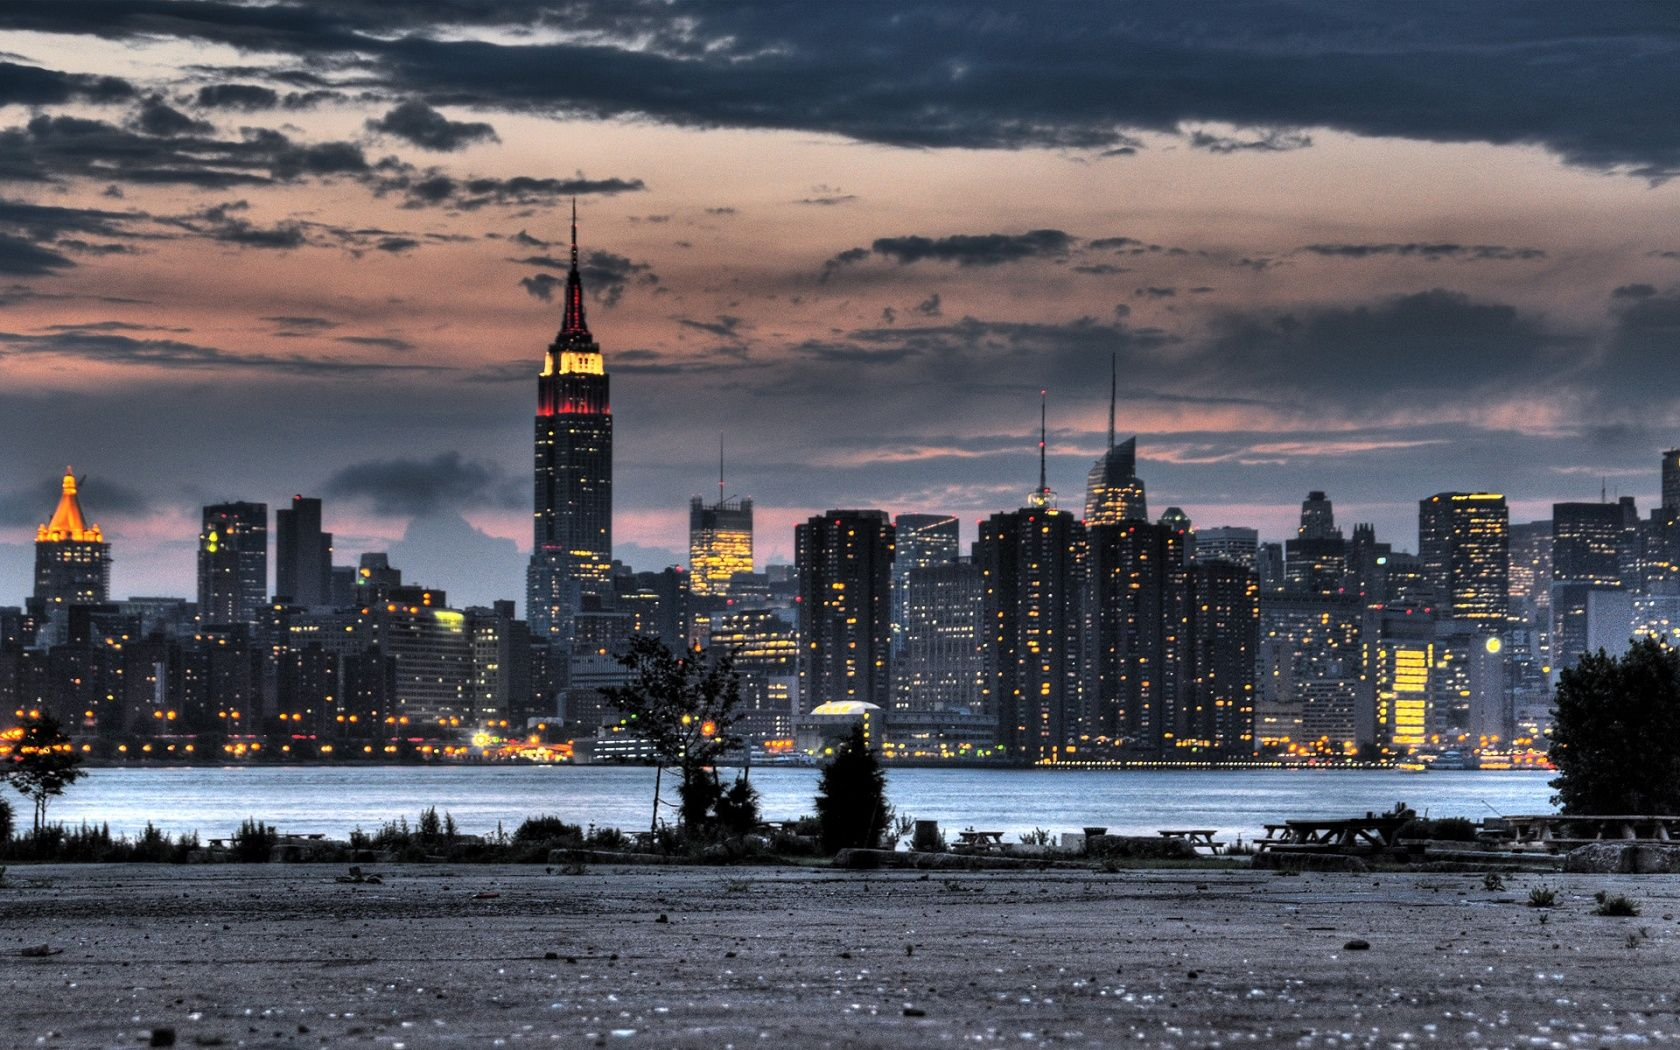 background of Empire State Building, New York